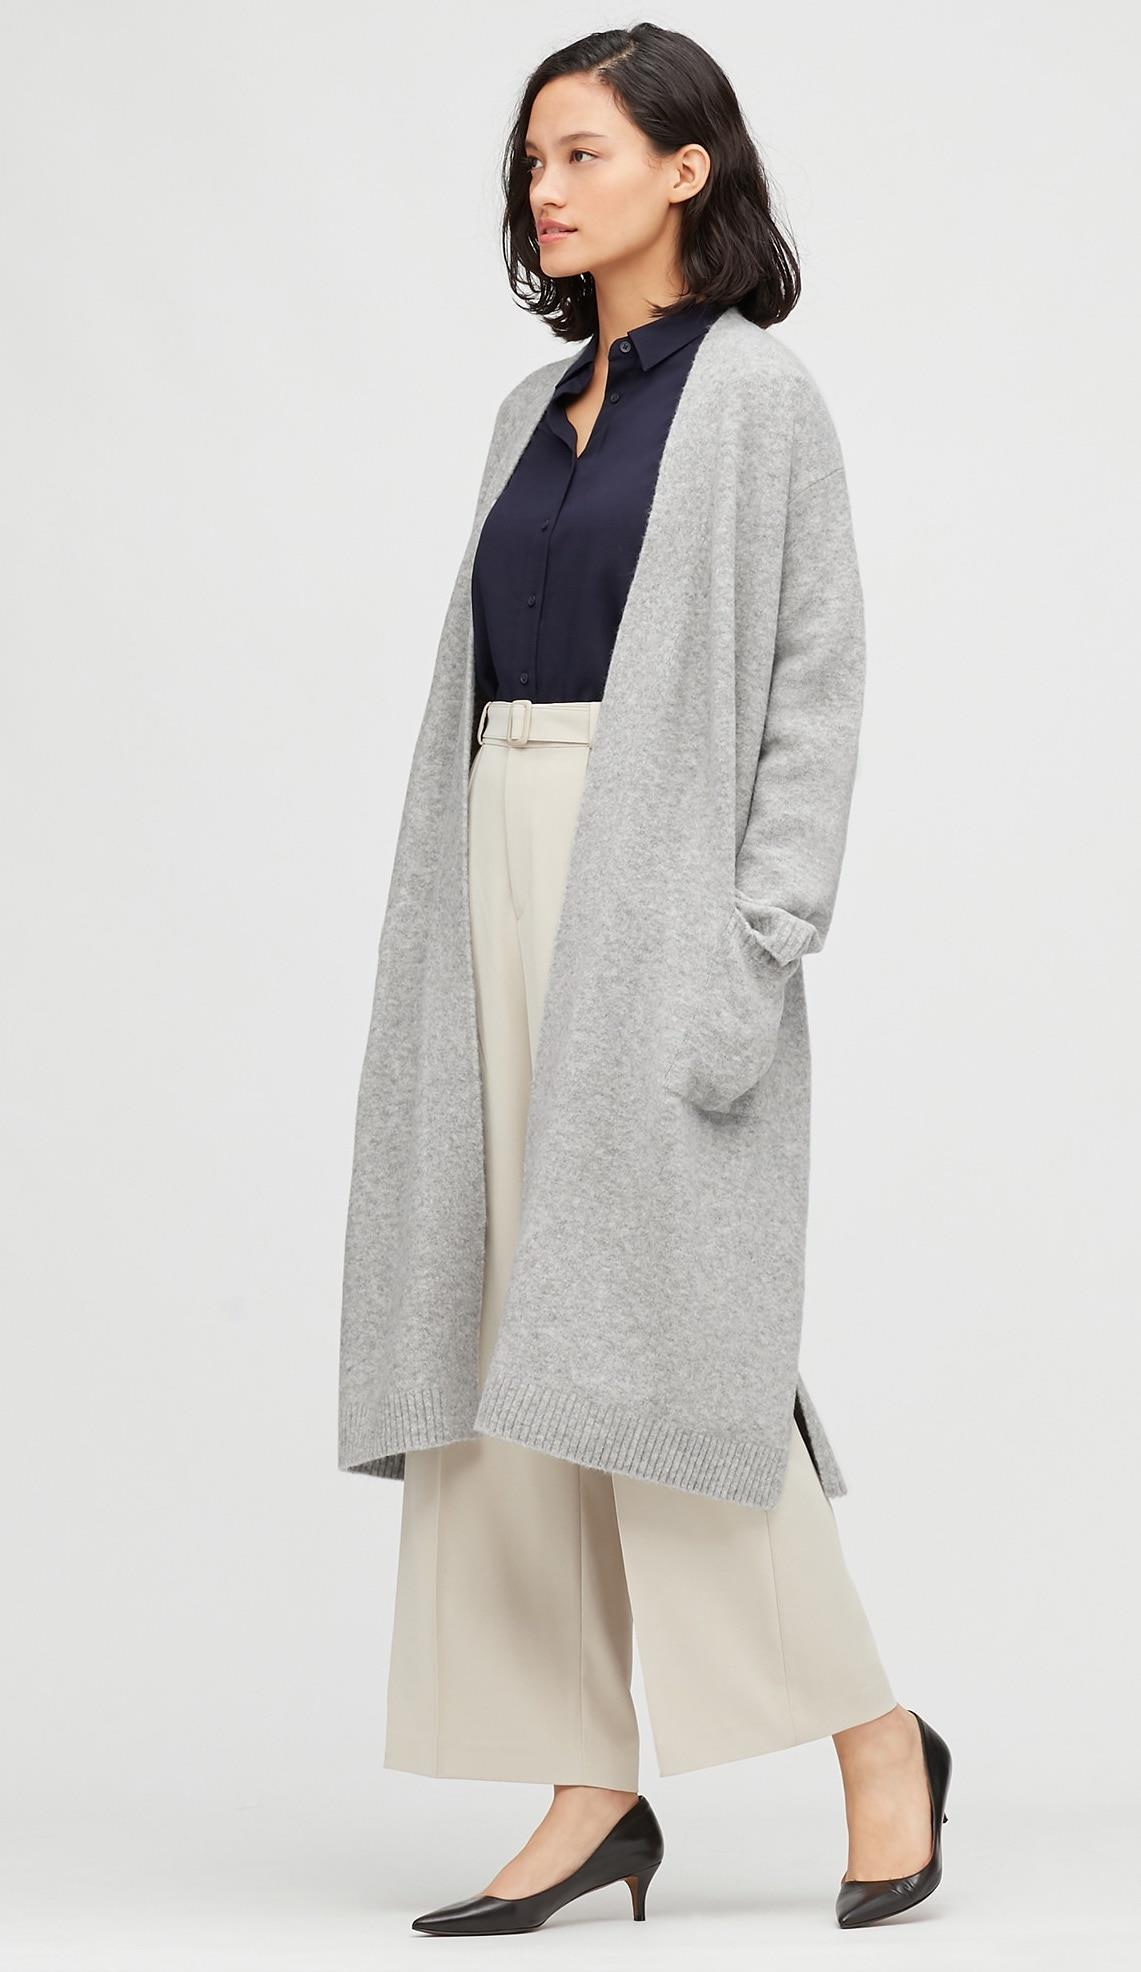 Cardigan largo en gris de Uniqlo